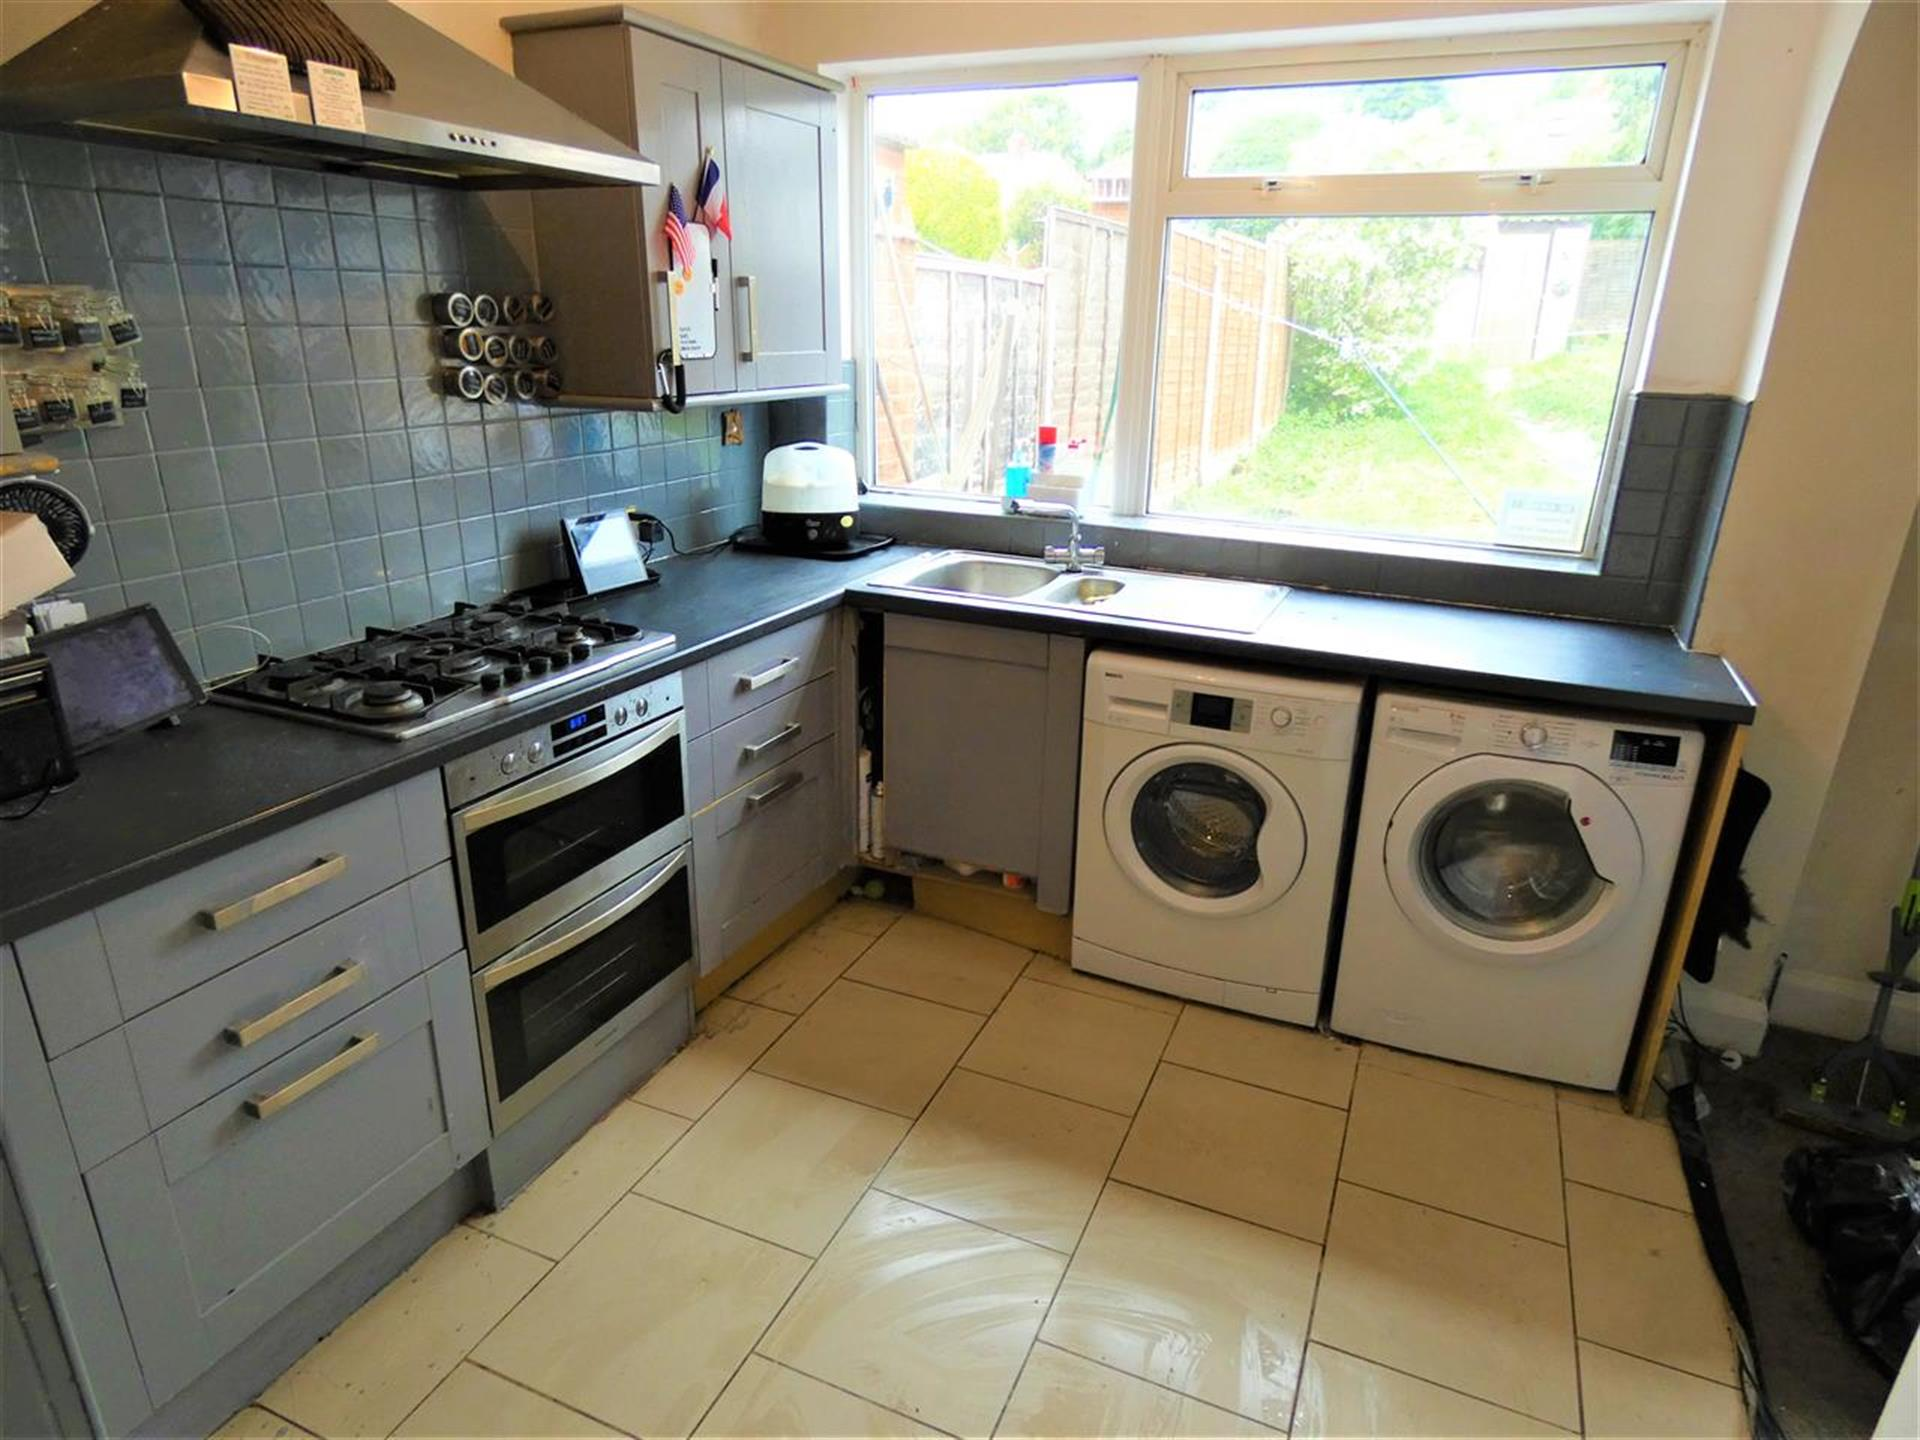 3 Bedroom Semi-detached House For Sale - Image 5